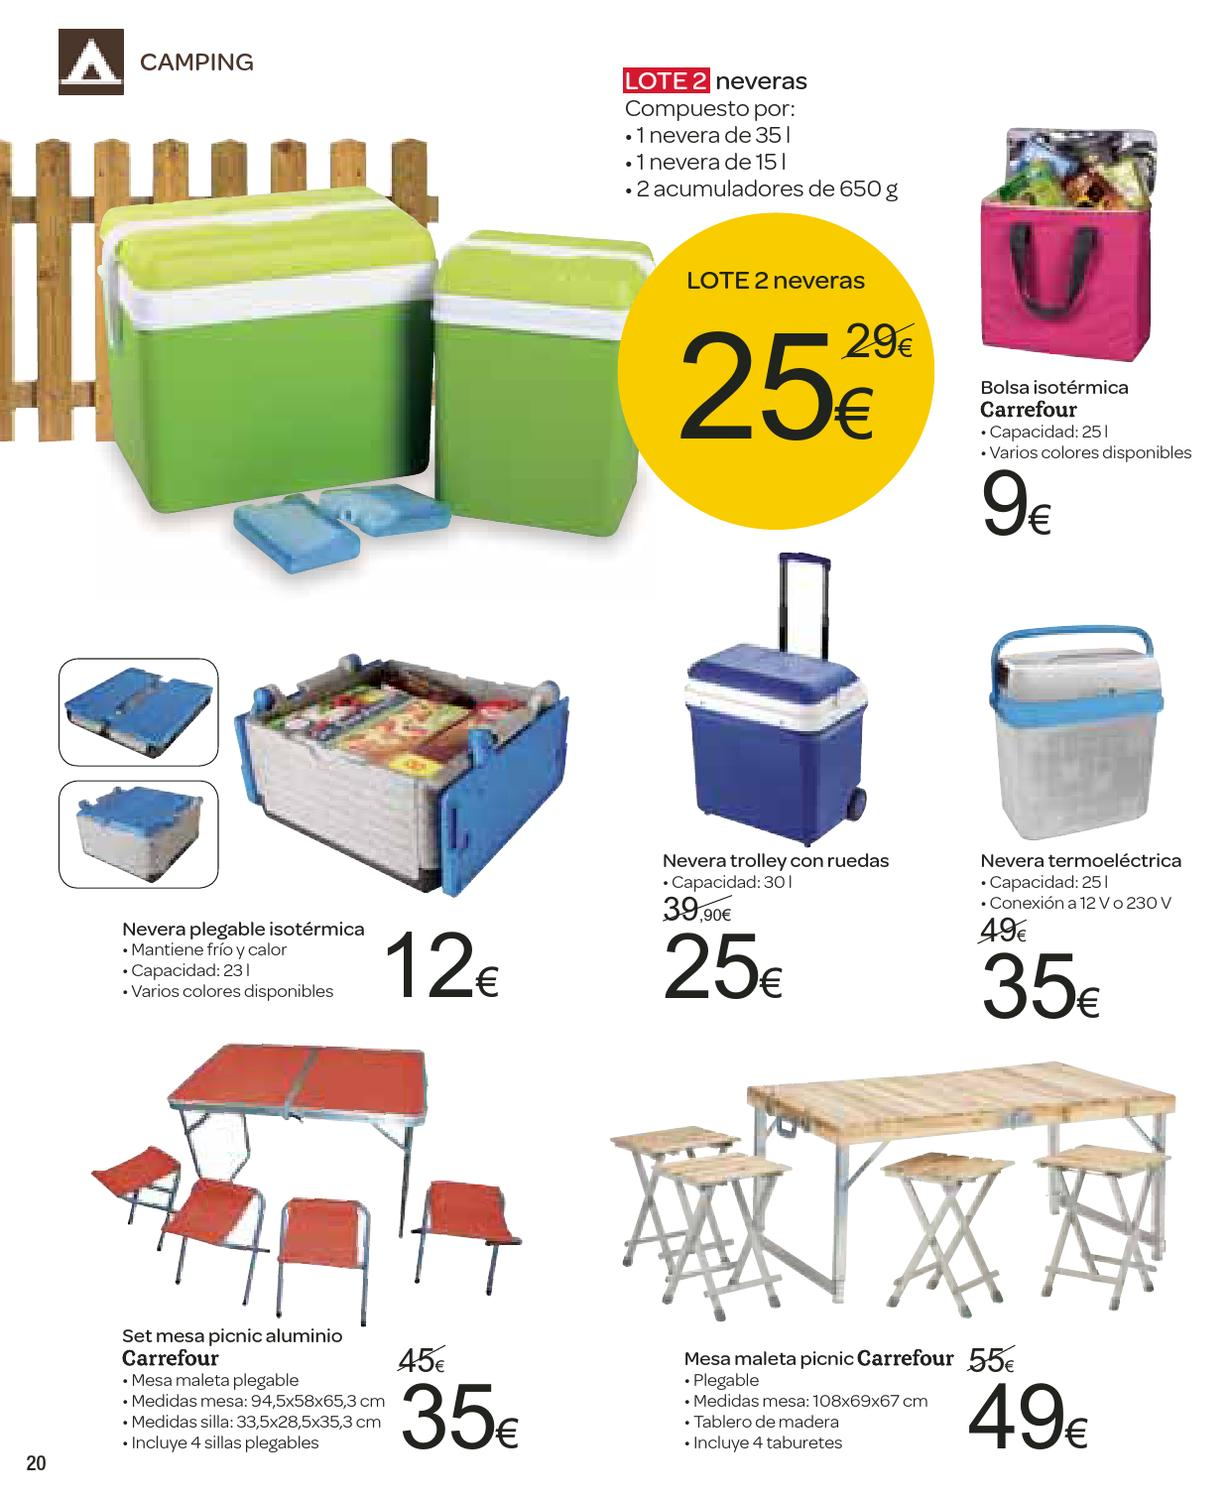 Catalogo carrefour piscinas 2013 by issuu - Mesa nevera carrefour ...